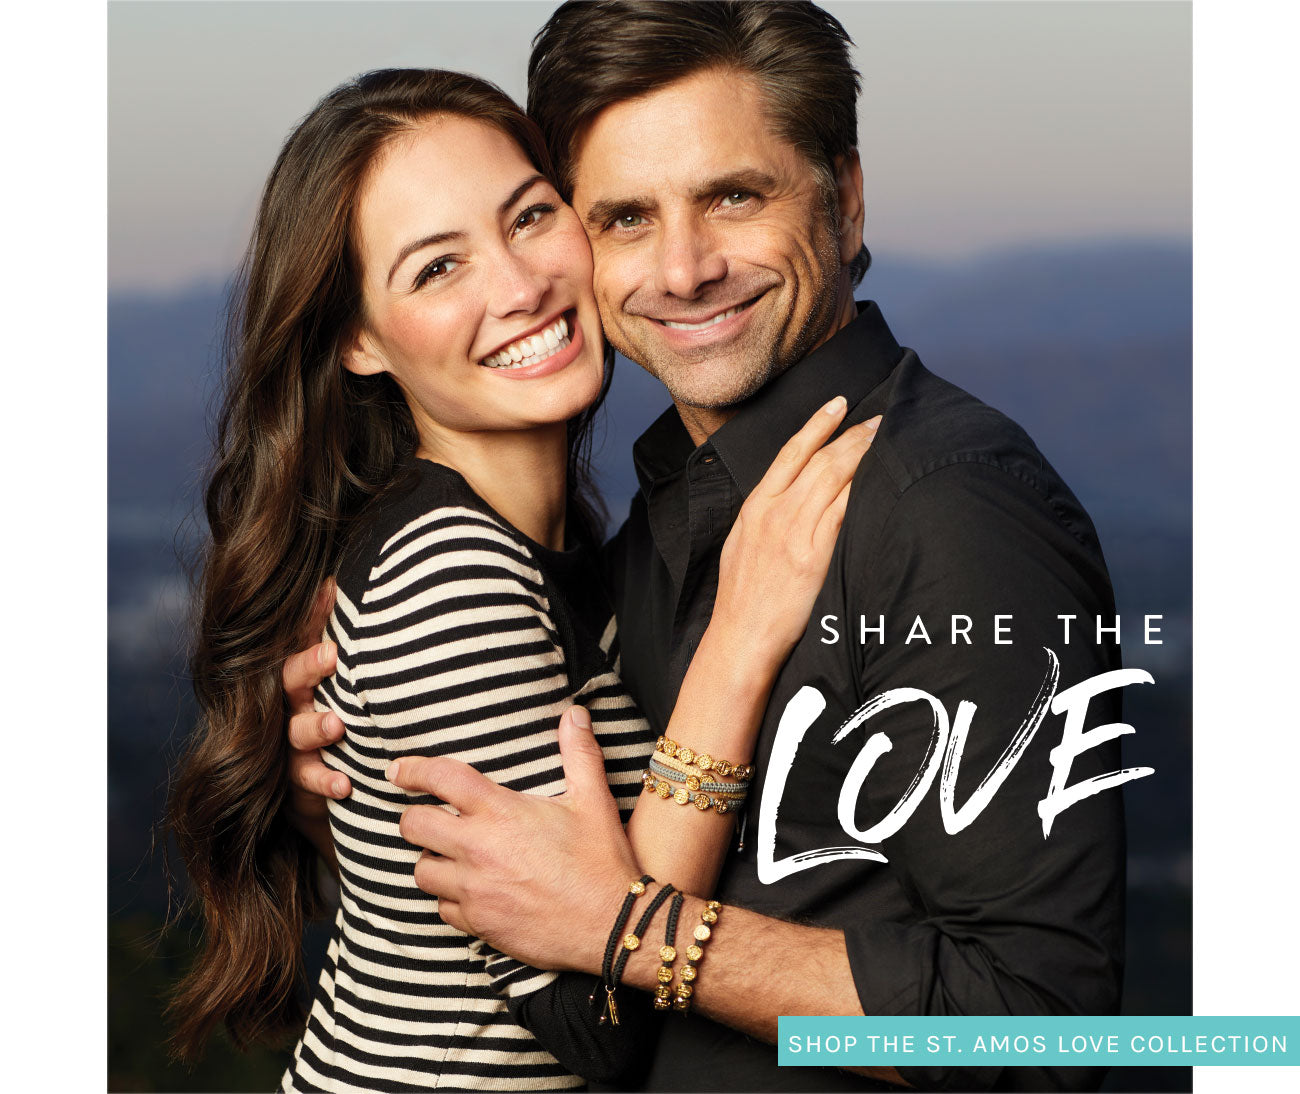 SHARE THE LOVE - Shop the St. Amos Collection photo of Caitlin and John Stamos in Share the Love St. Amos Bracelets